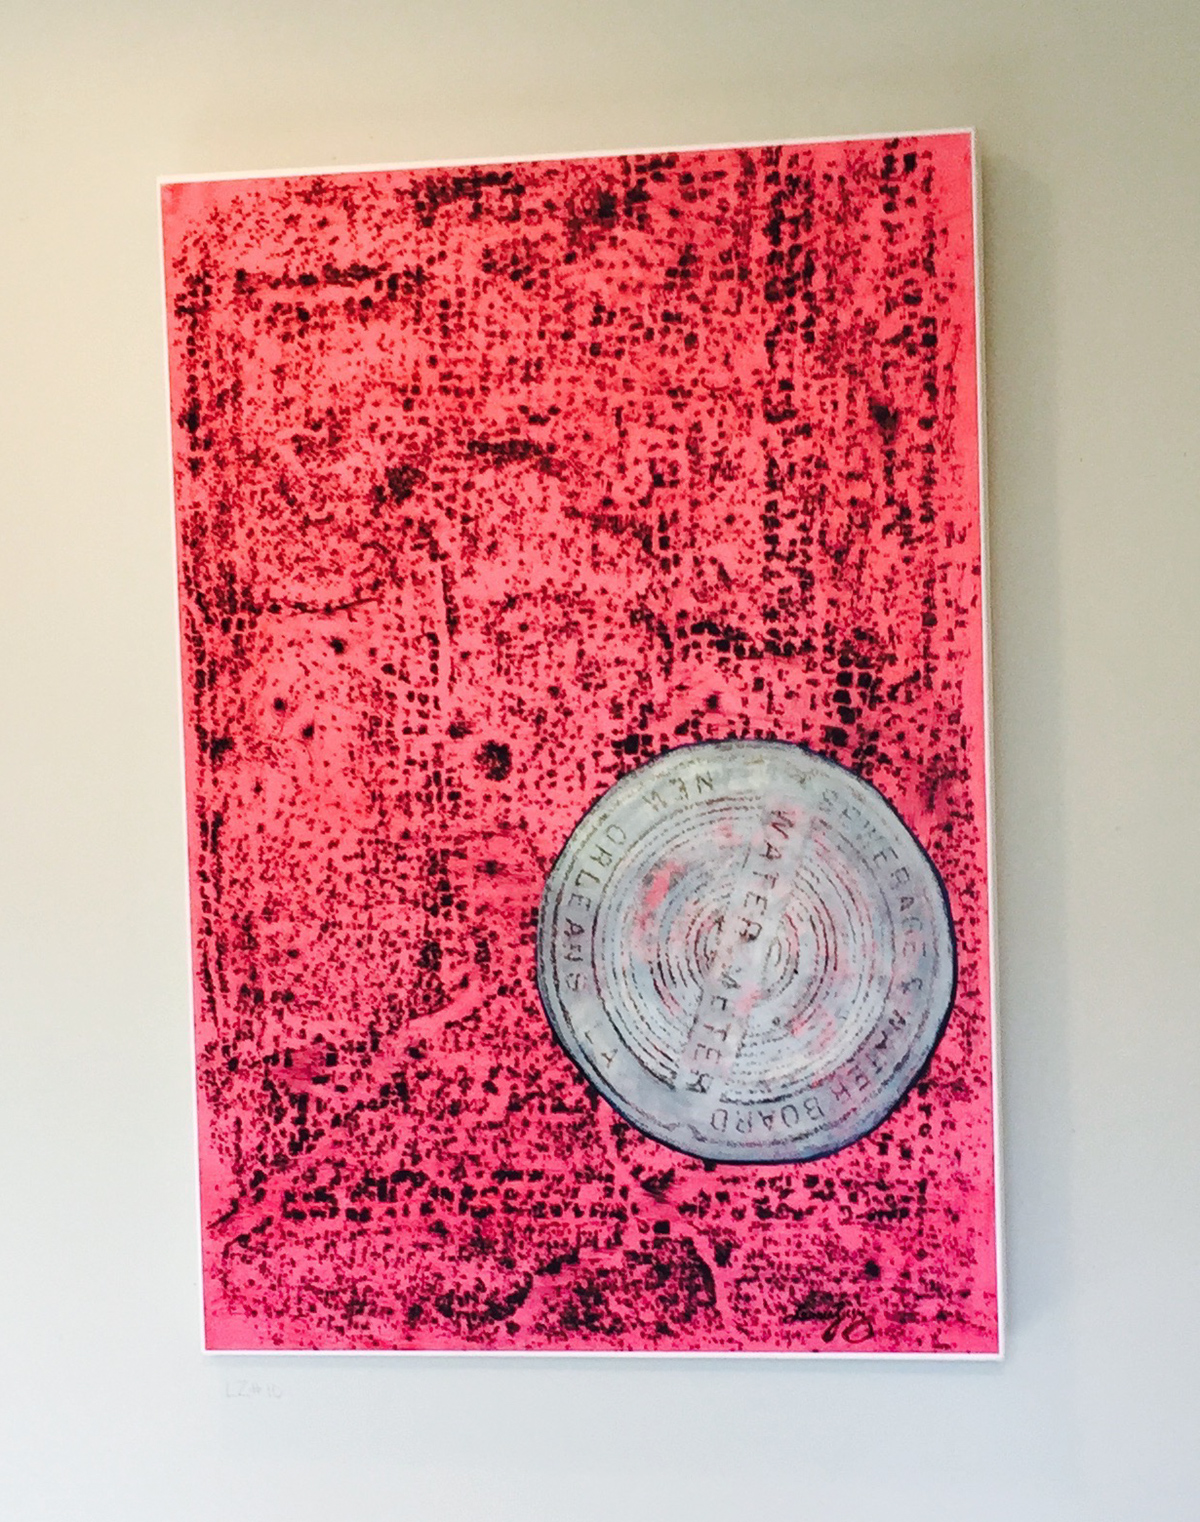 © 2016 Lucinda Ziesing, Lucinda, unknowingly the collage of a New Orleans water meter rubbing and a rubbing from the floor in Pompeii painting have a curious connection. The date of the Vesuvius and Katrina natural disasters is August 24th. No accidents, Right?